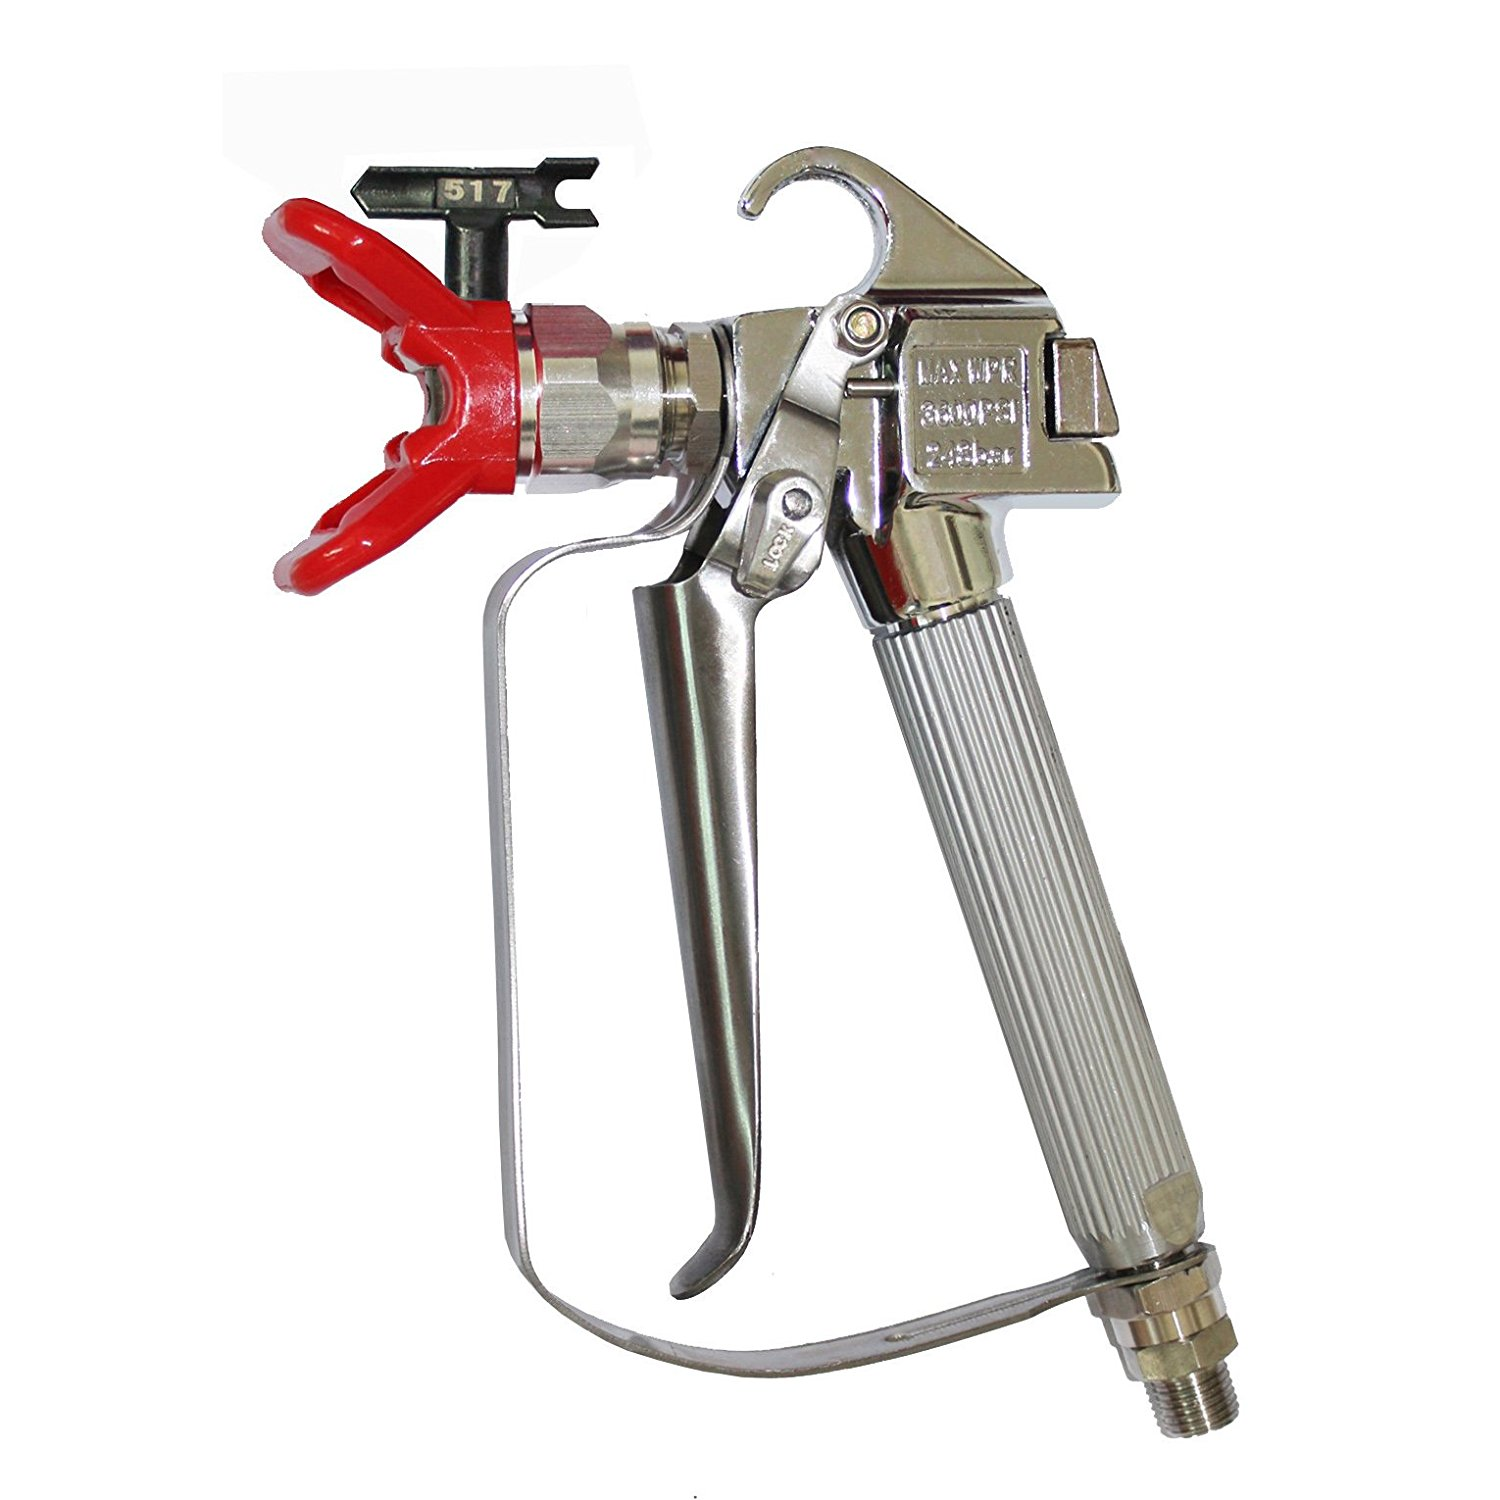 Dusichin Dus 036 Airless Paint Spray Gun Best Paint